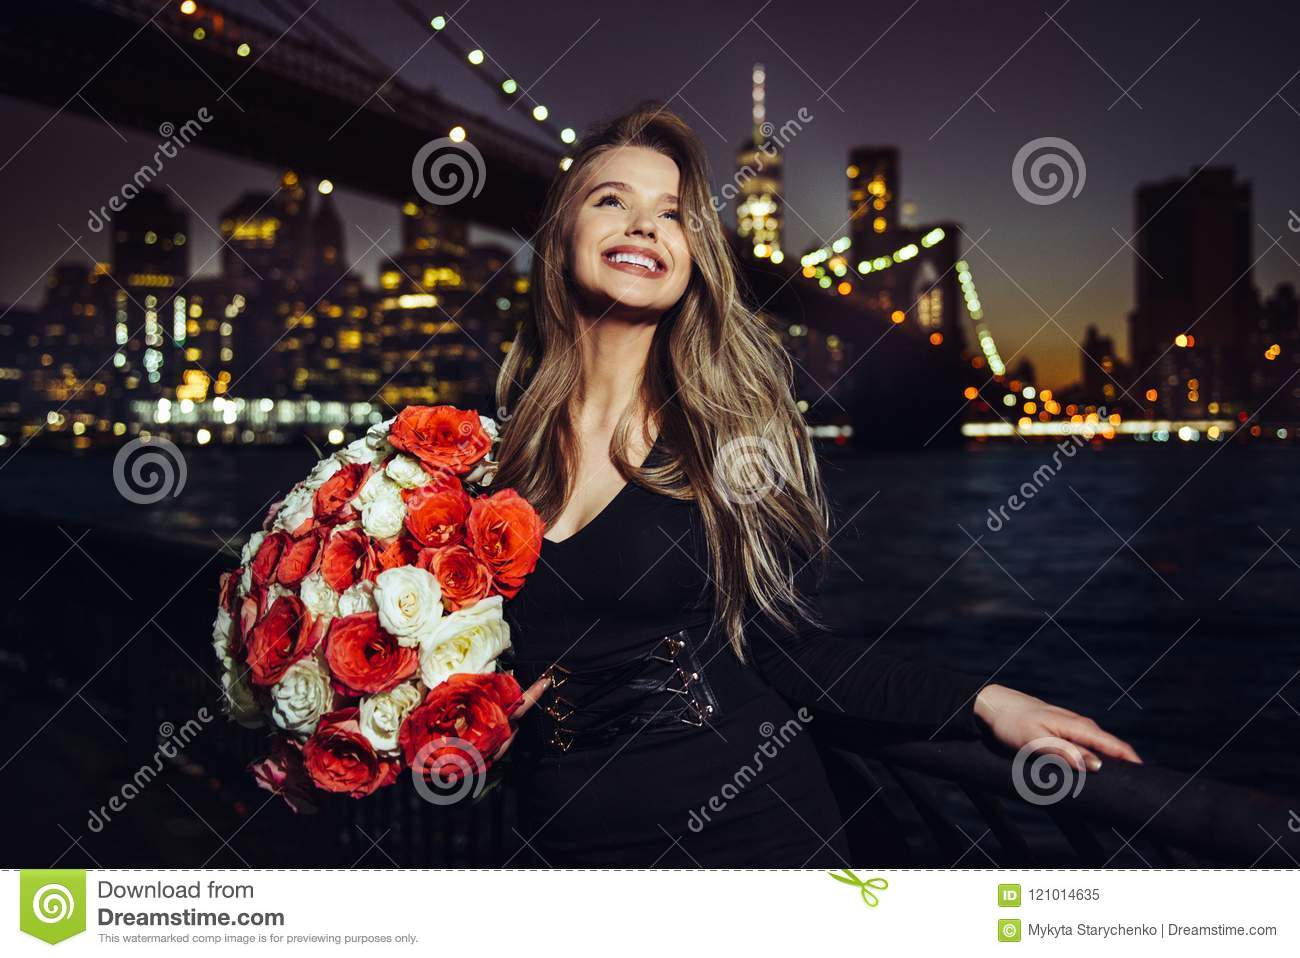 Beautiful smiling woman enjoy her birthday rose flower bouquet present at the party in the city.